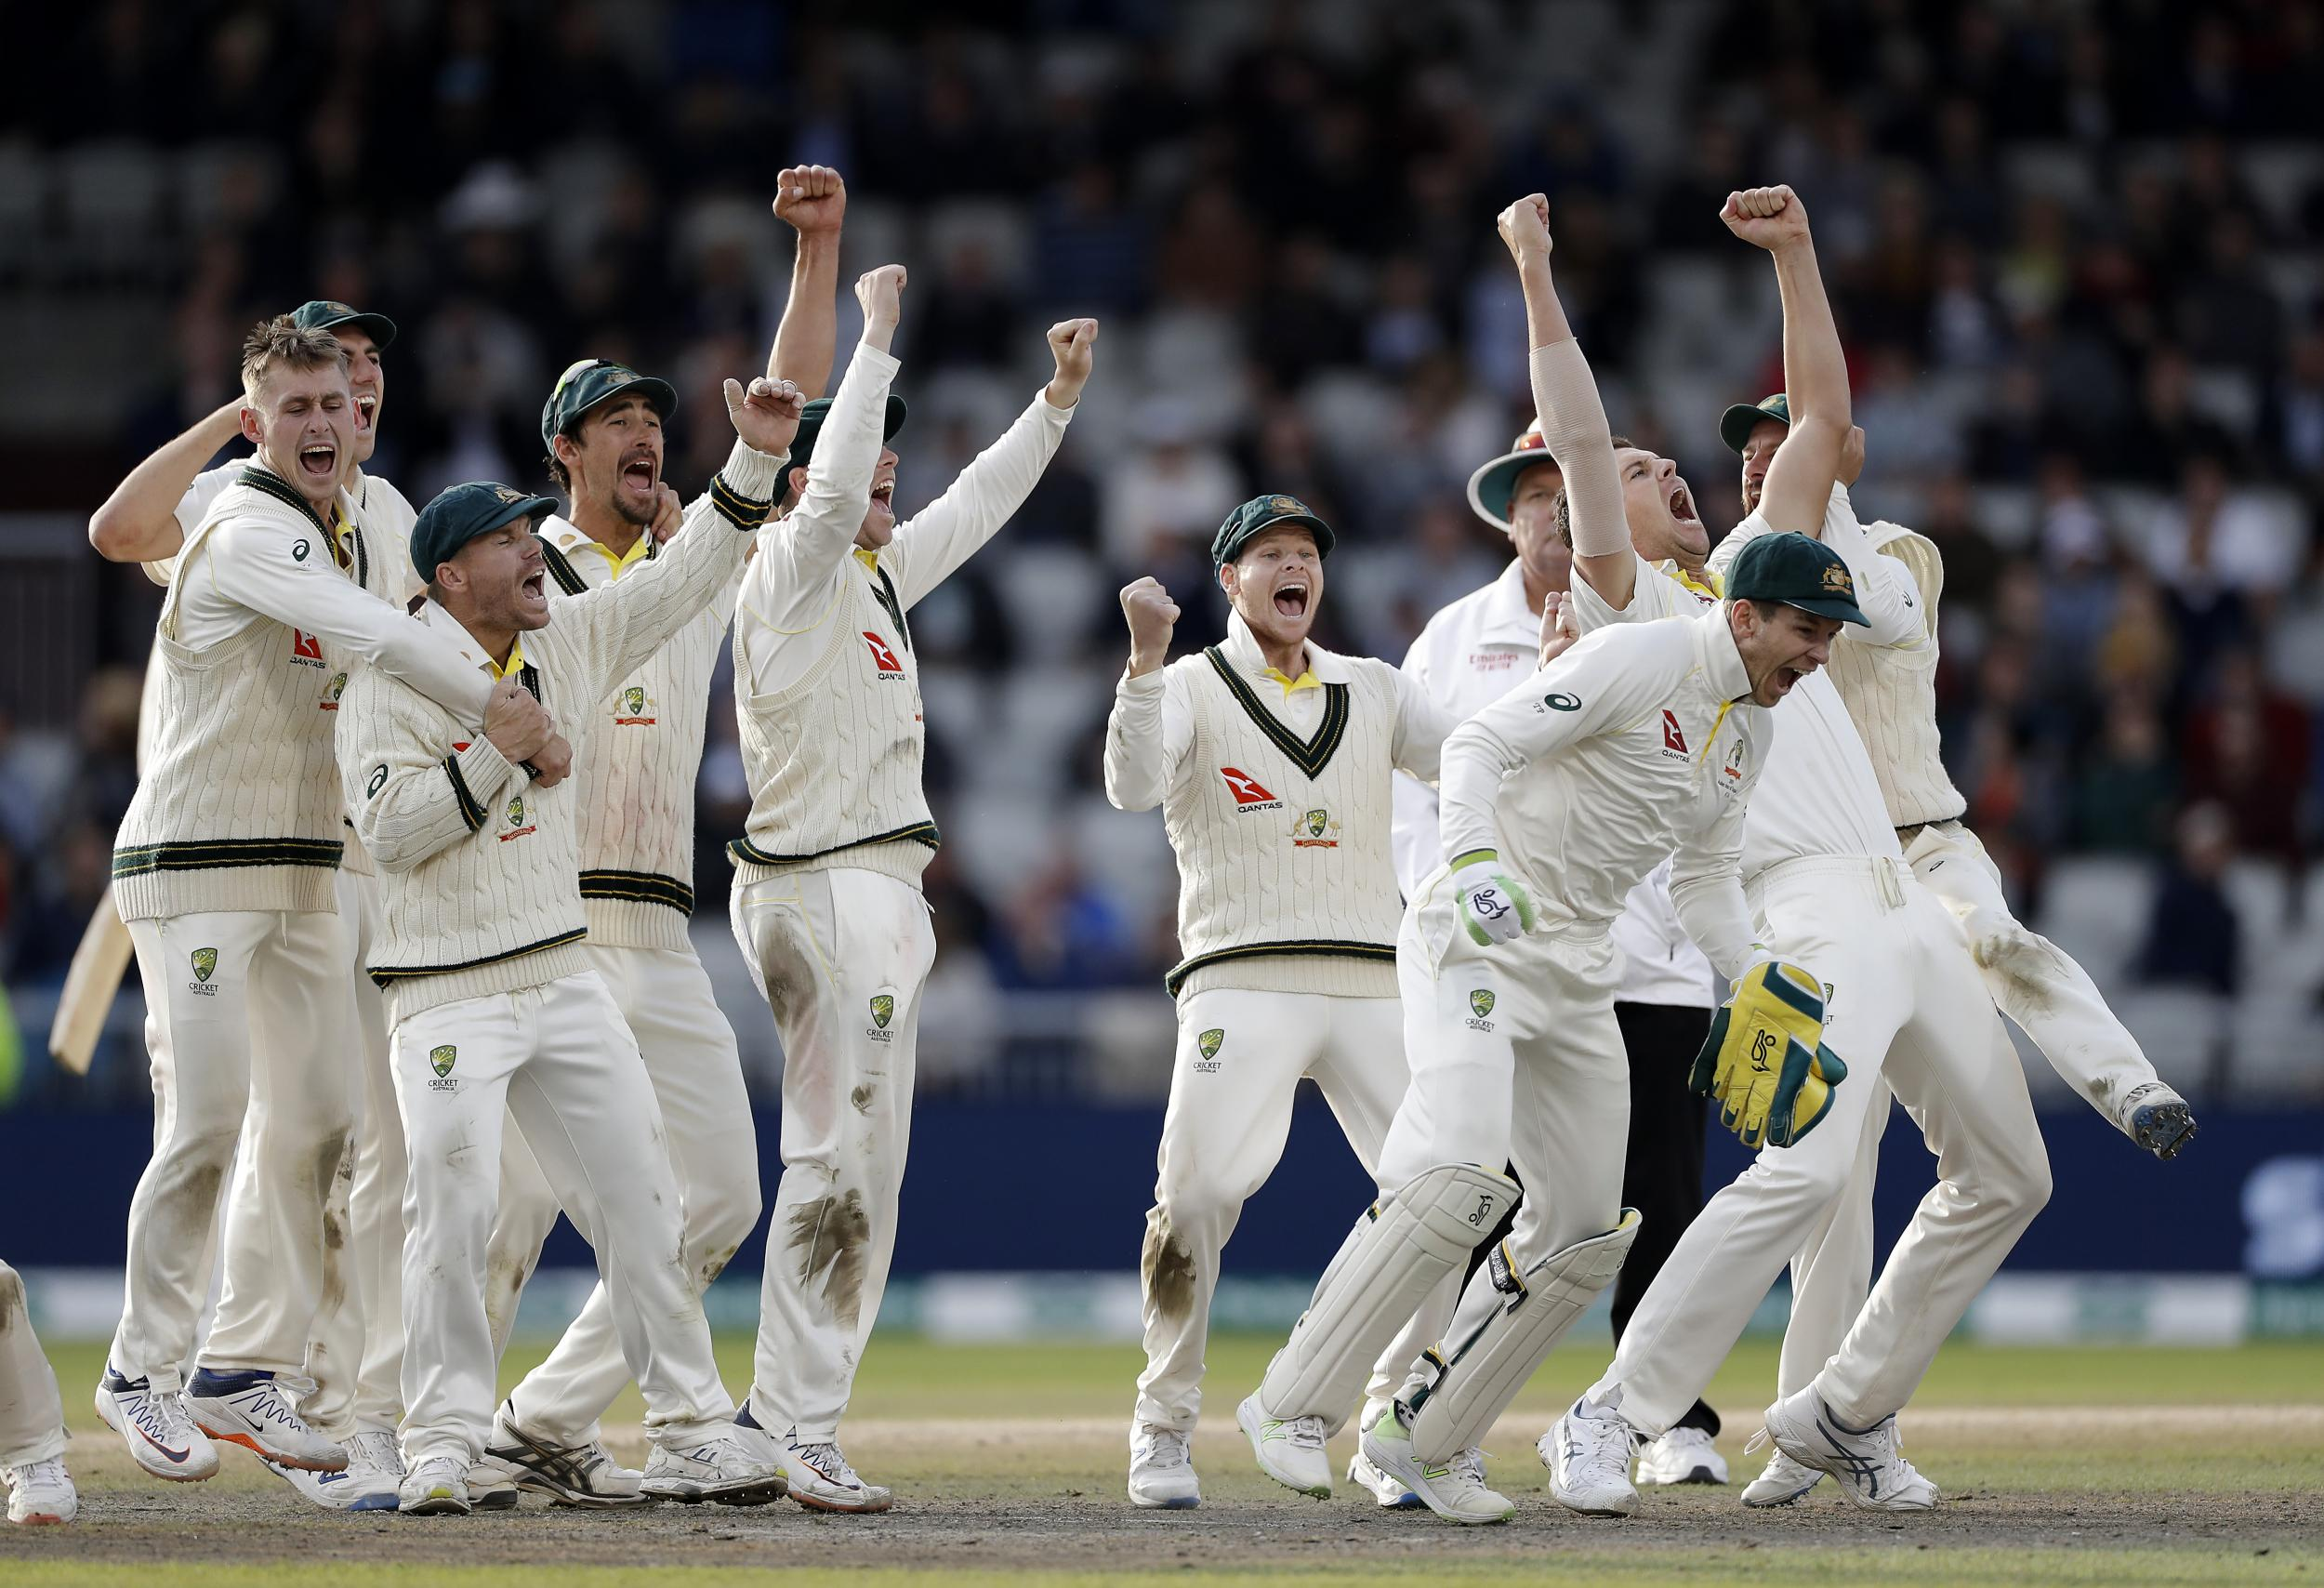 England dare to dream but come up short as Australia retain the Ashes